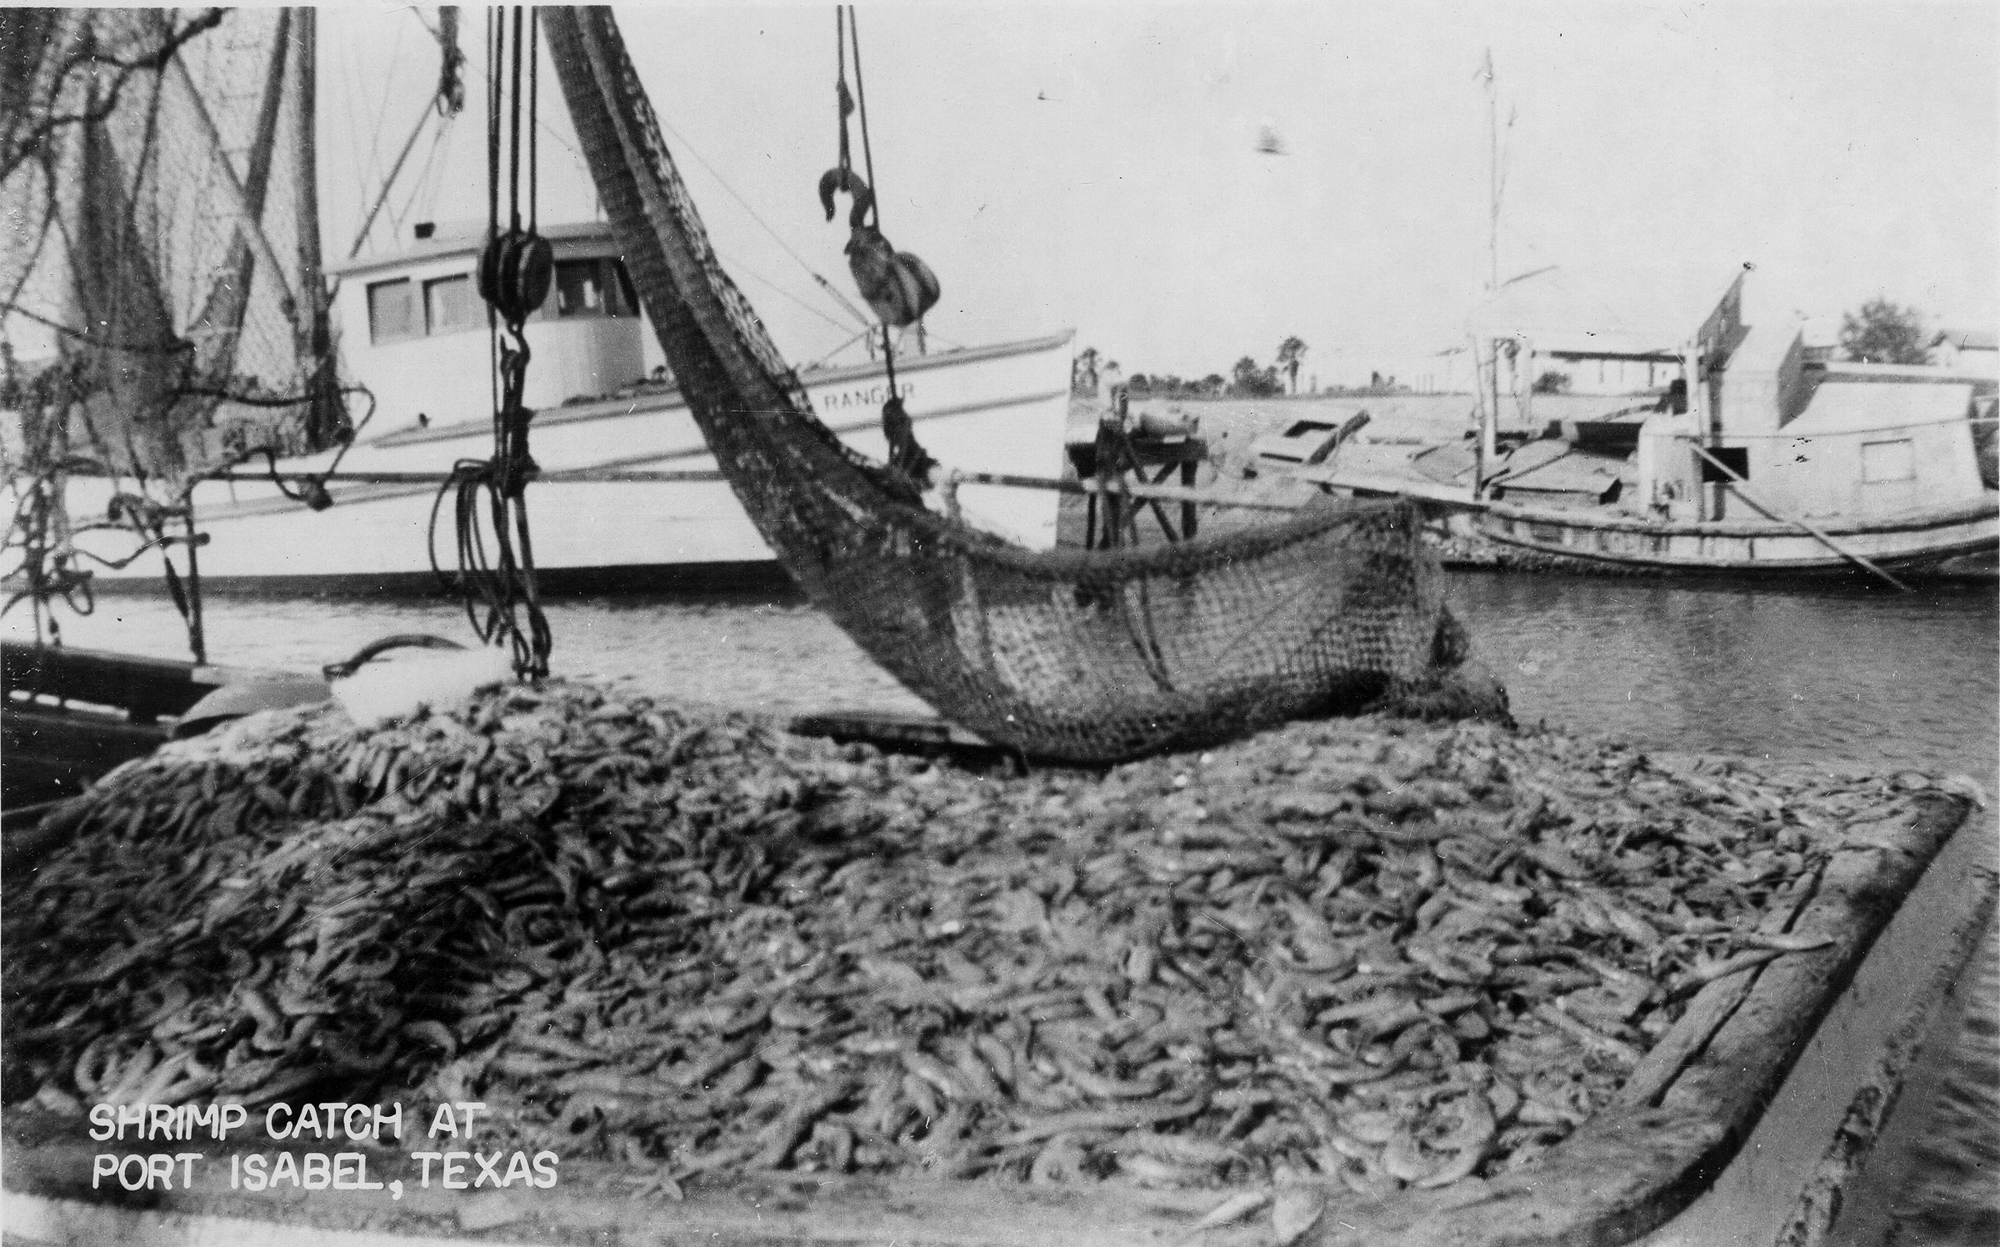 1940s real photo postcard of a Shrimp Catch in Port Isabel, Texas.